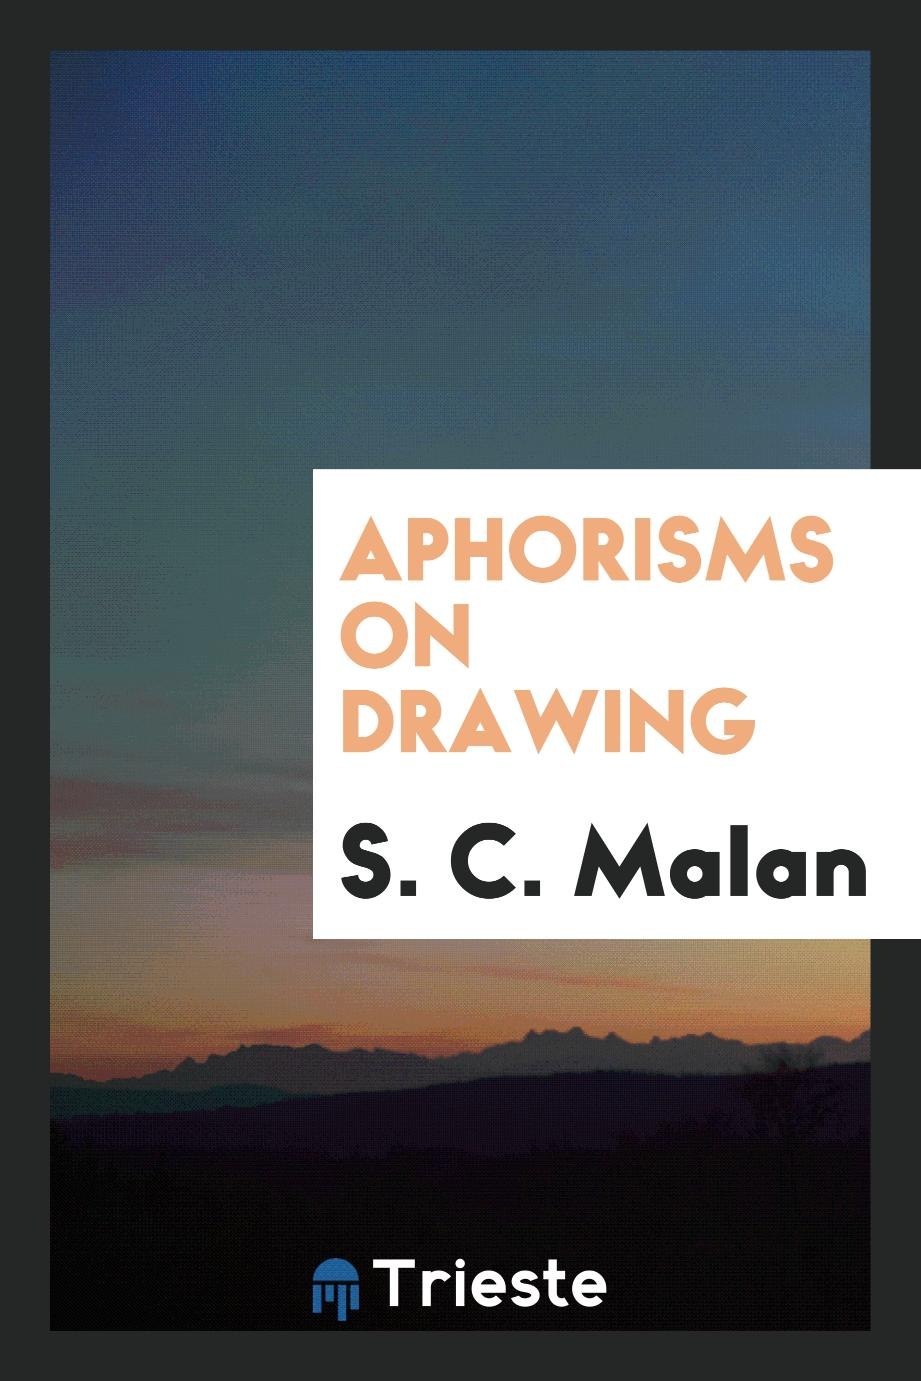 Aphorisms on Drawing